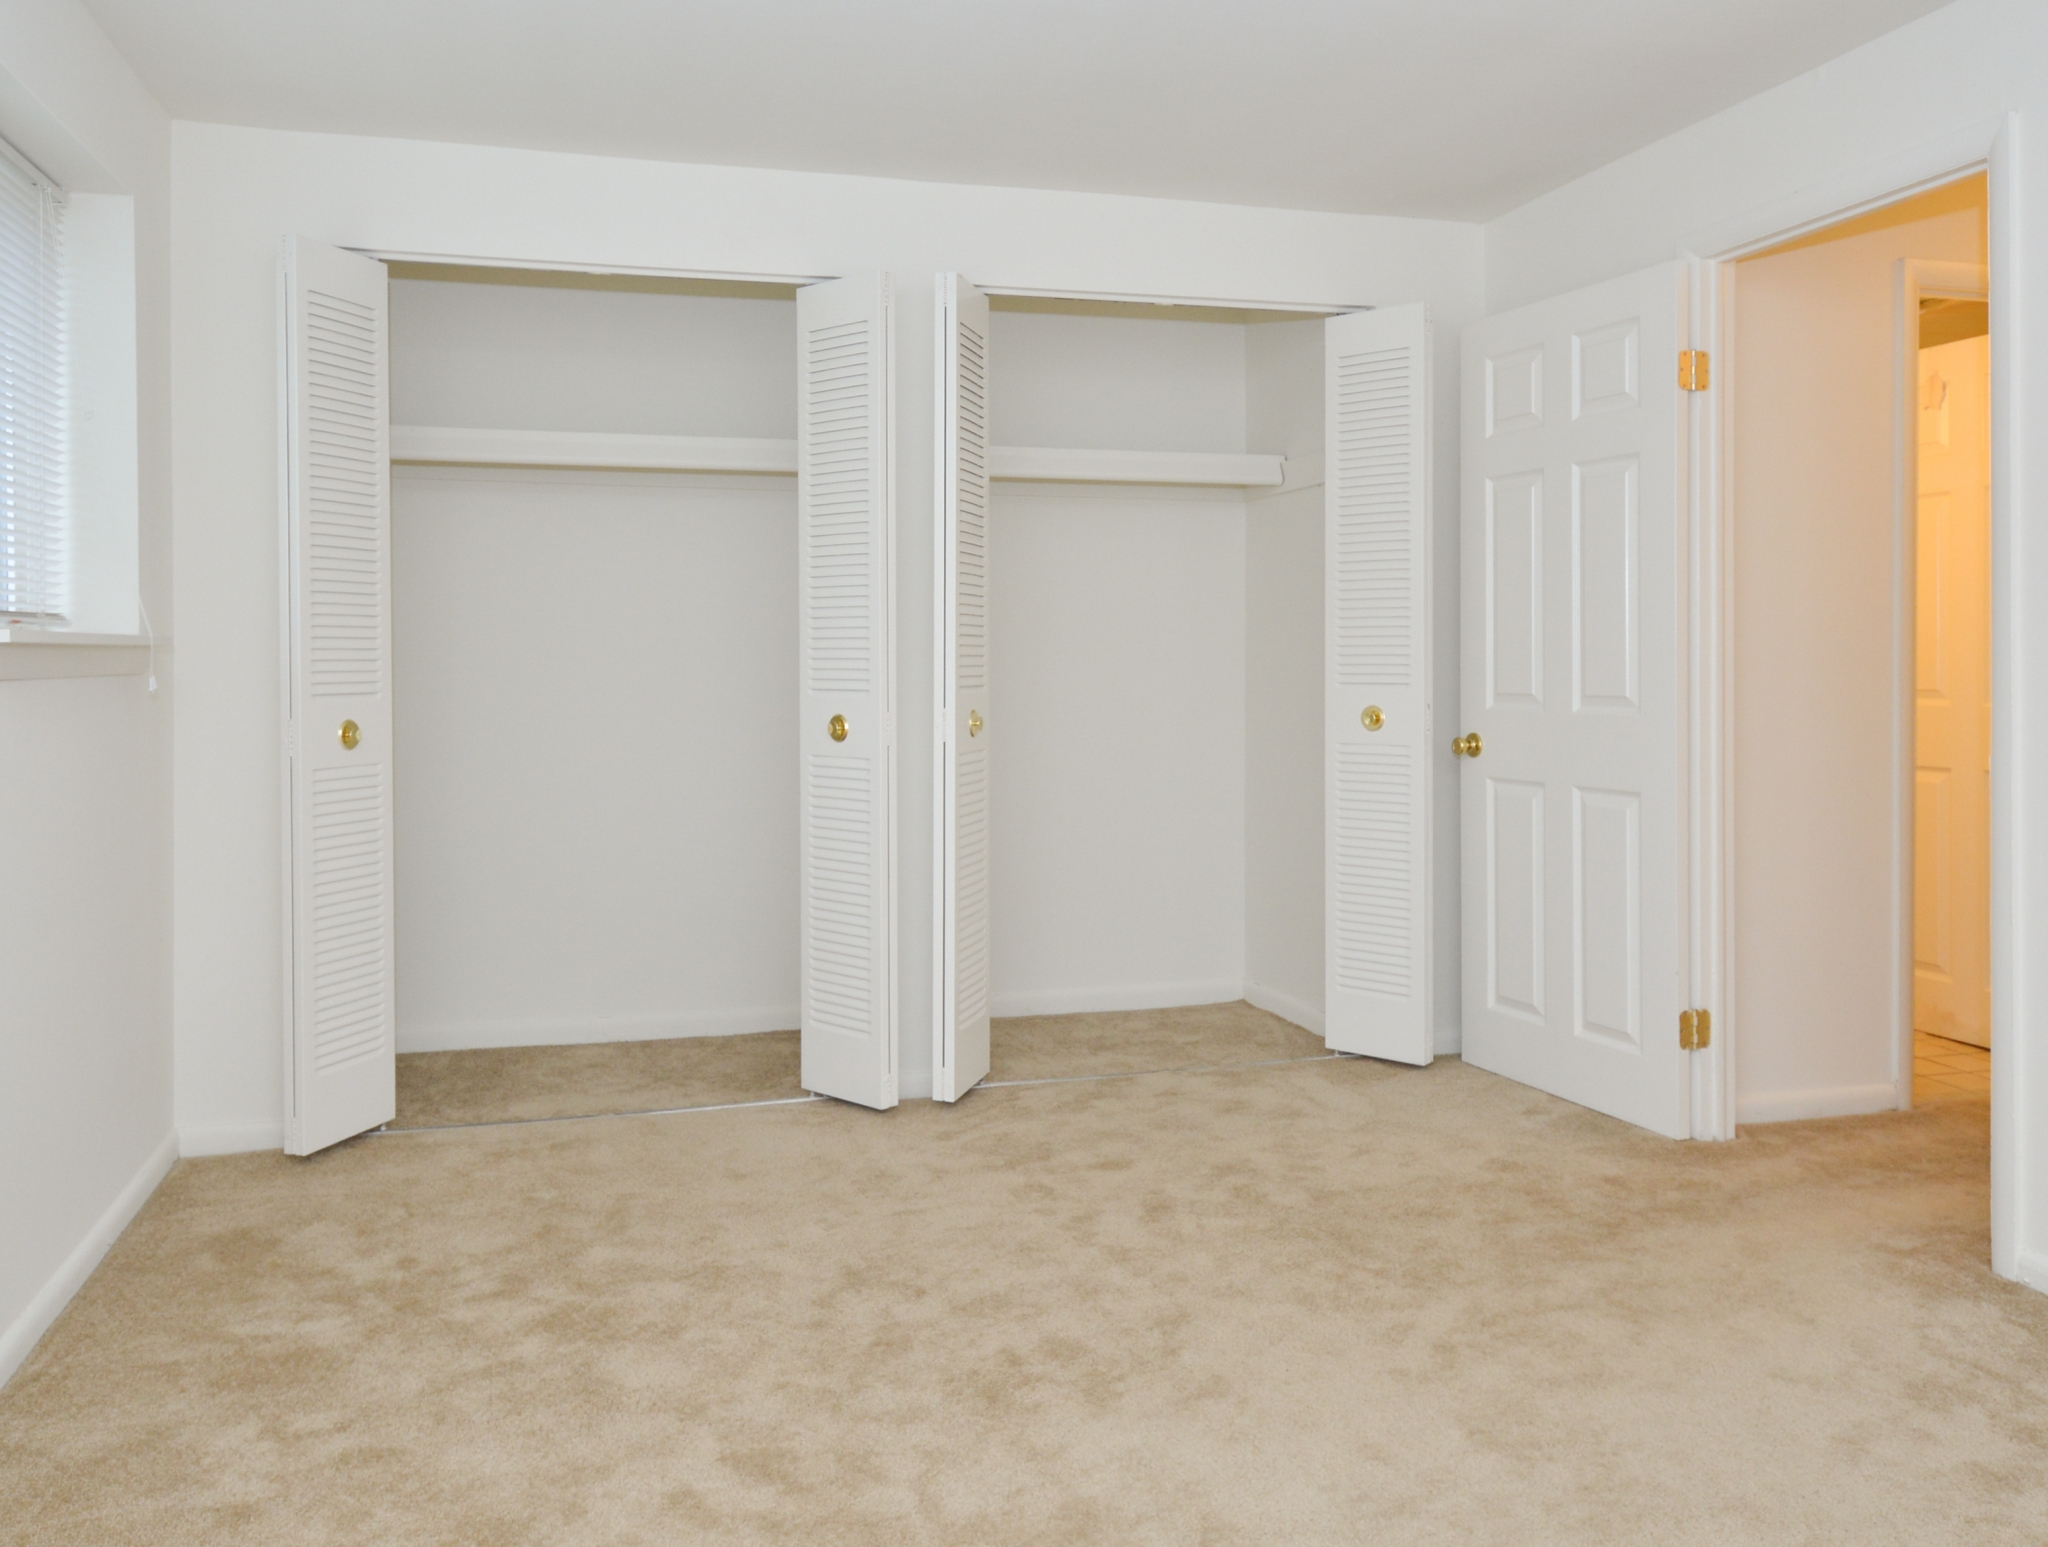 The Villages of Westbrook Apartments image 10